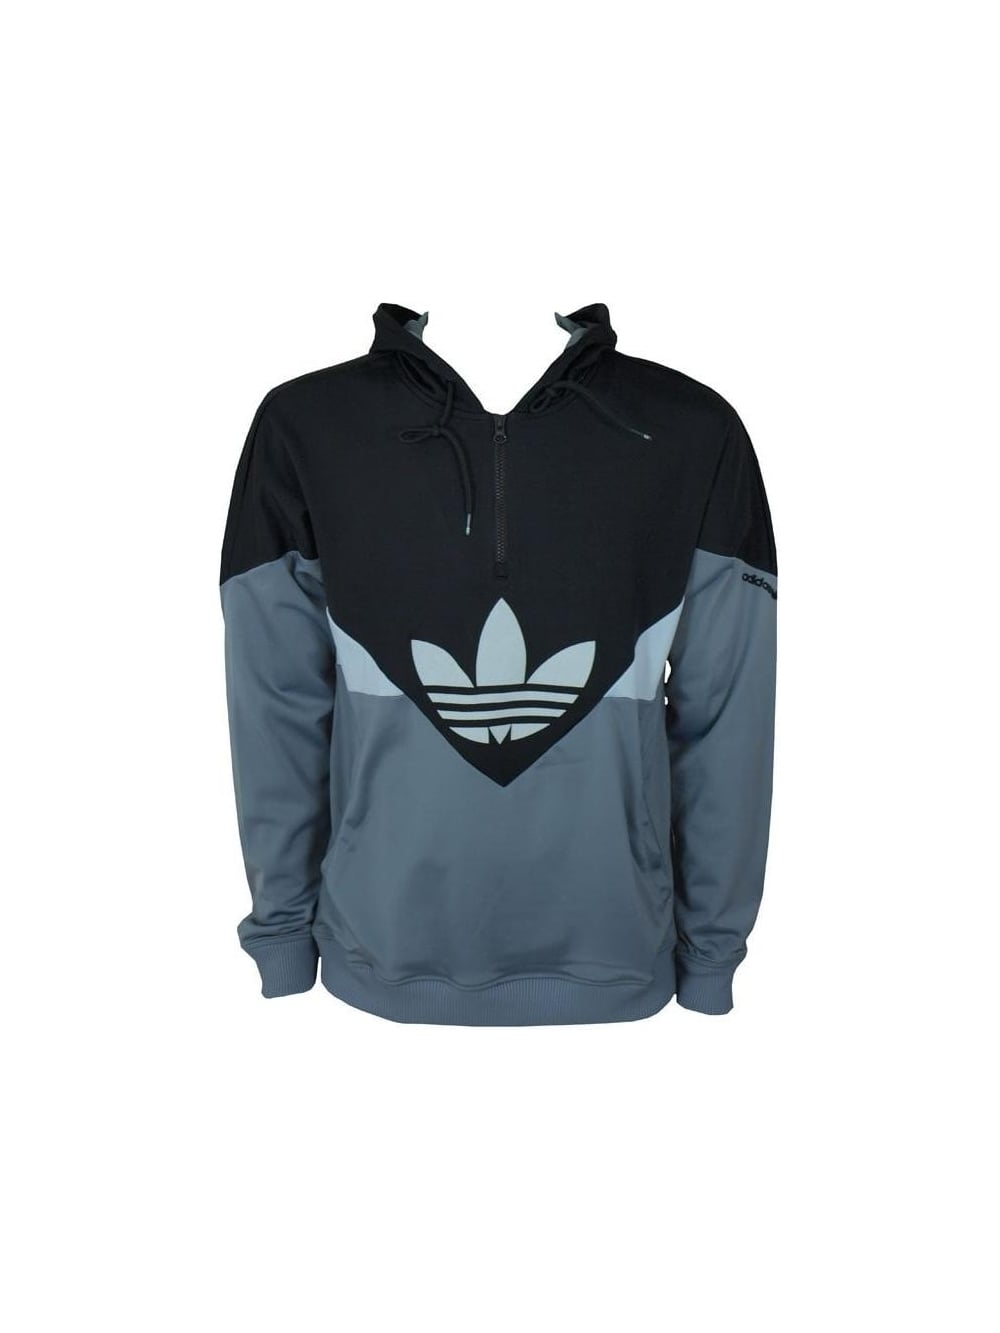 477cad4f Adidas Originals Colorado 1/2 Zip Hooded Sweat in Black - Buy Adidas ...